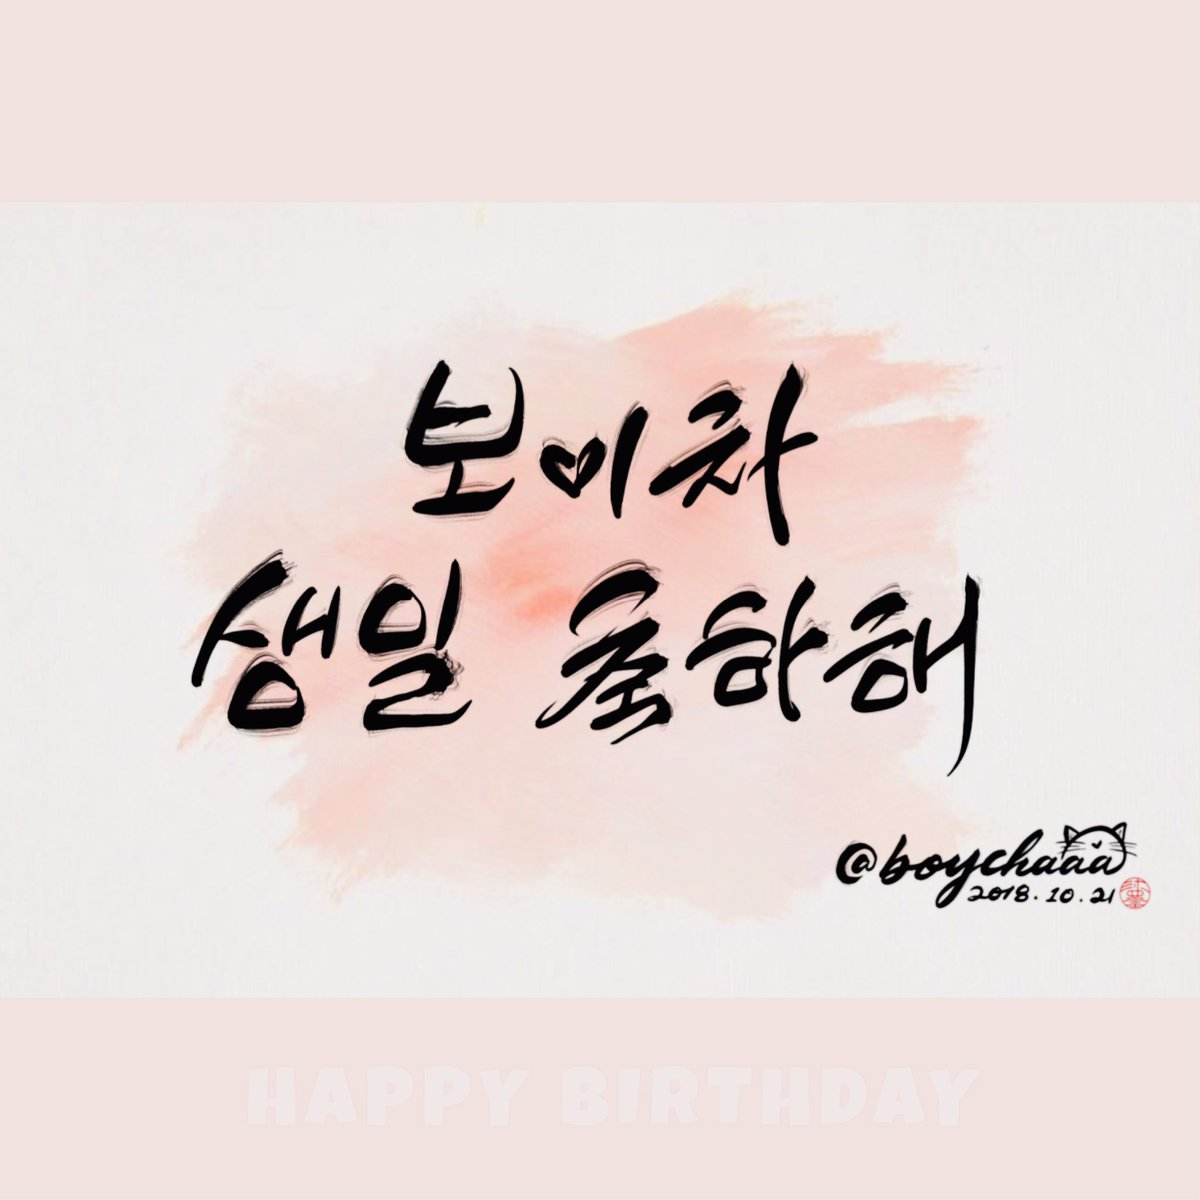 Mua On Twitter Happy Birthday My Sweet Heart Hoping All Your Birthday Wishes Come True This Year Å¿ƒ Is Korean Time 00 00 Now Boychaaa Https T Co 4t7nfhkc4n